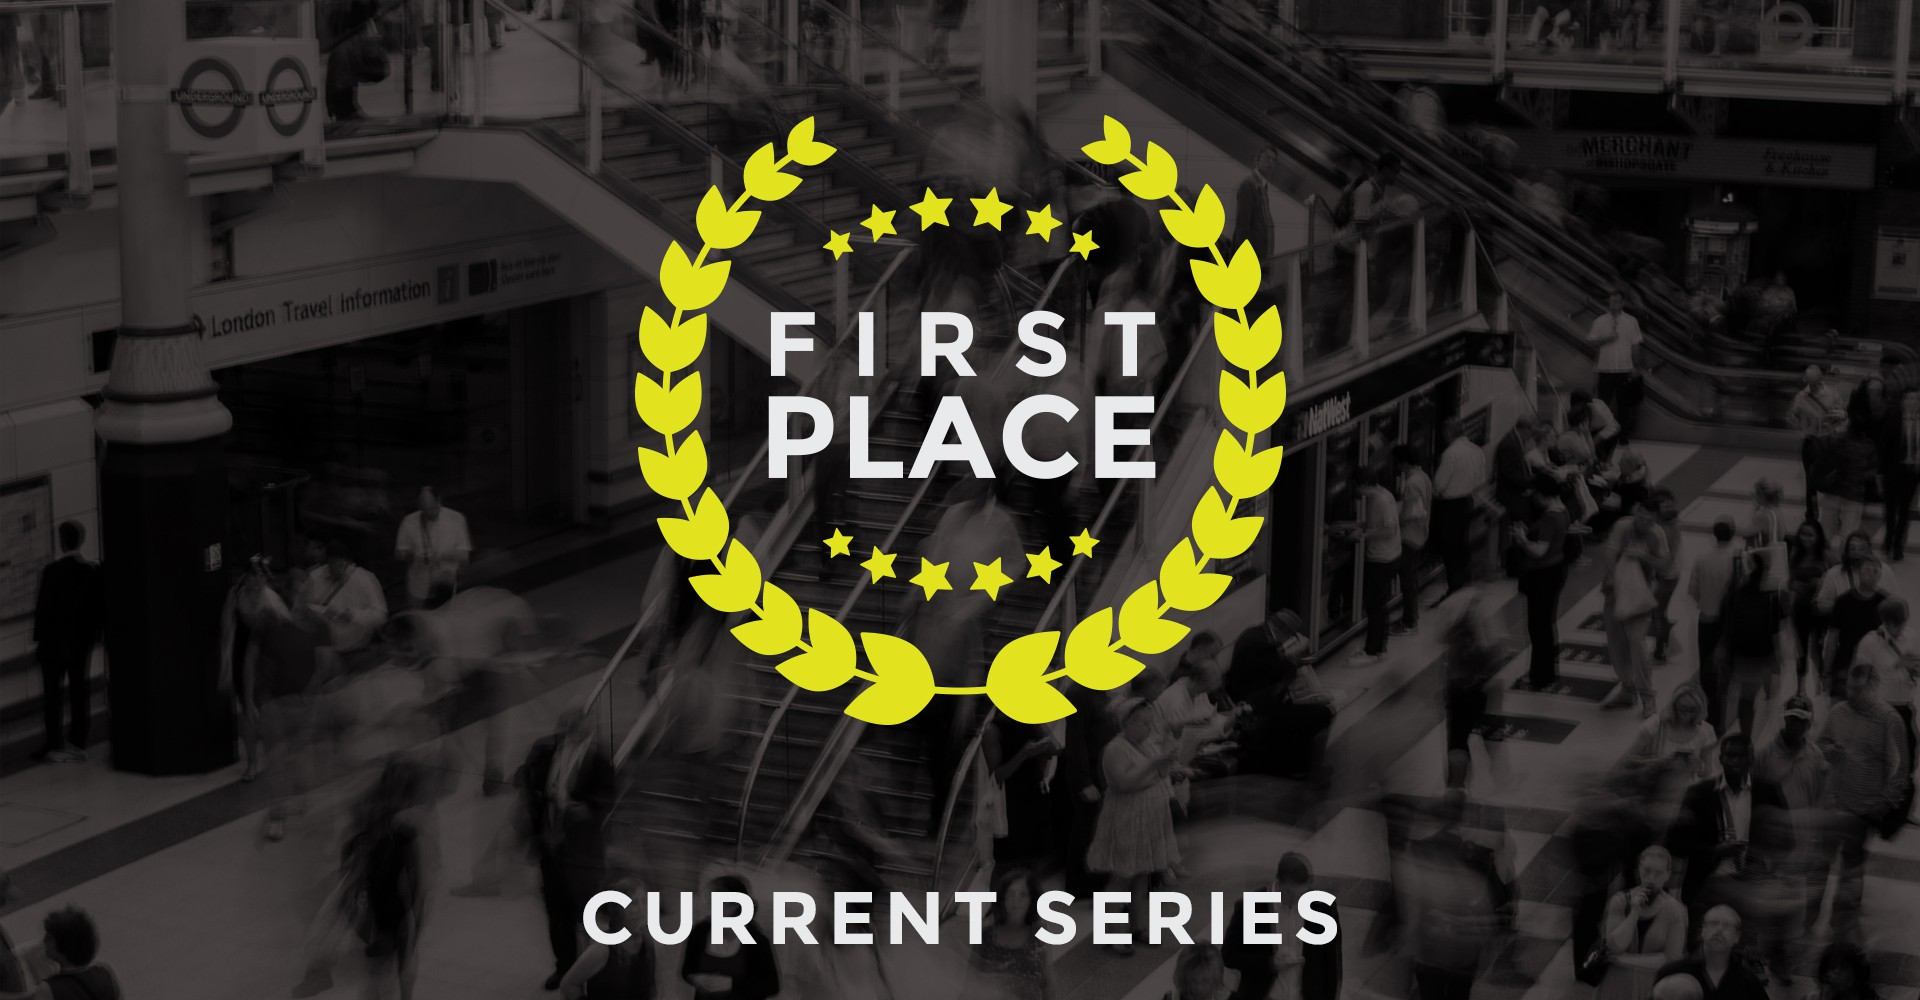 Firstplace_currentseries